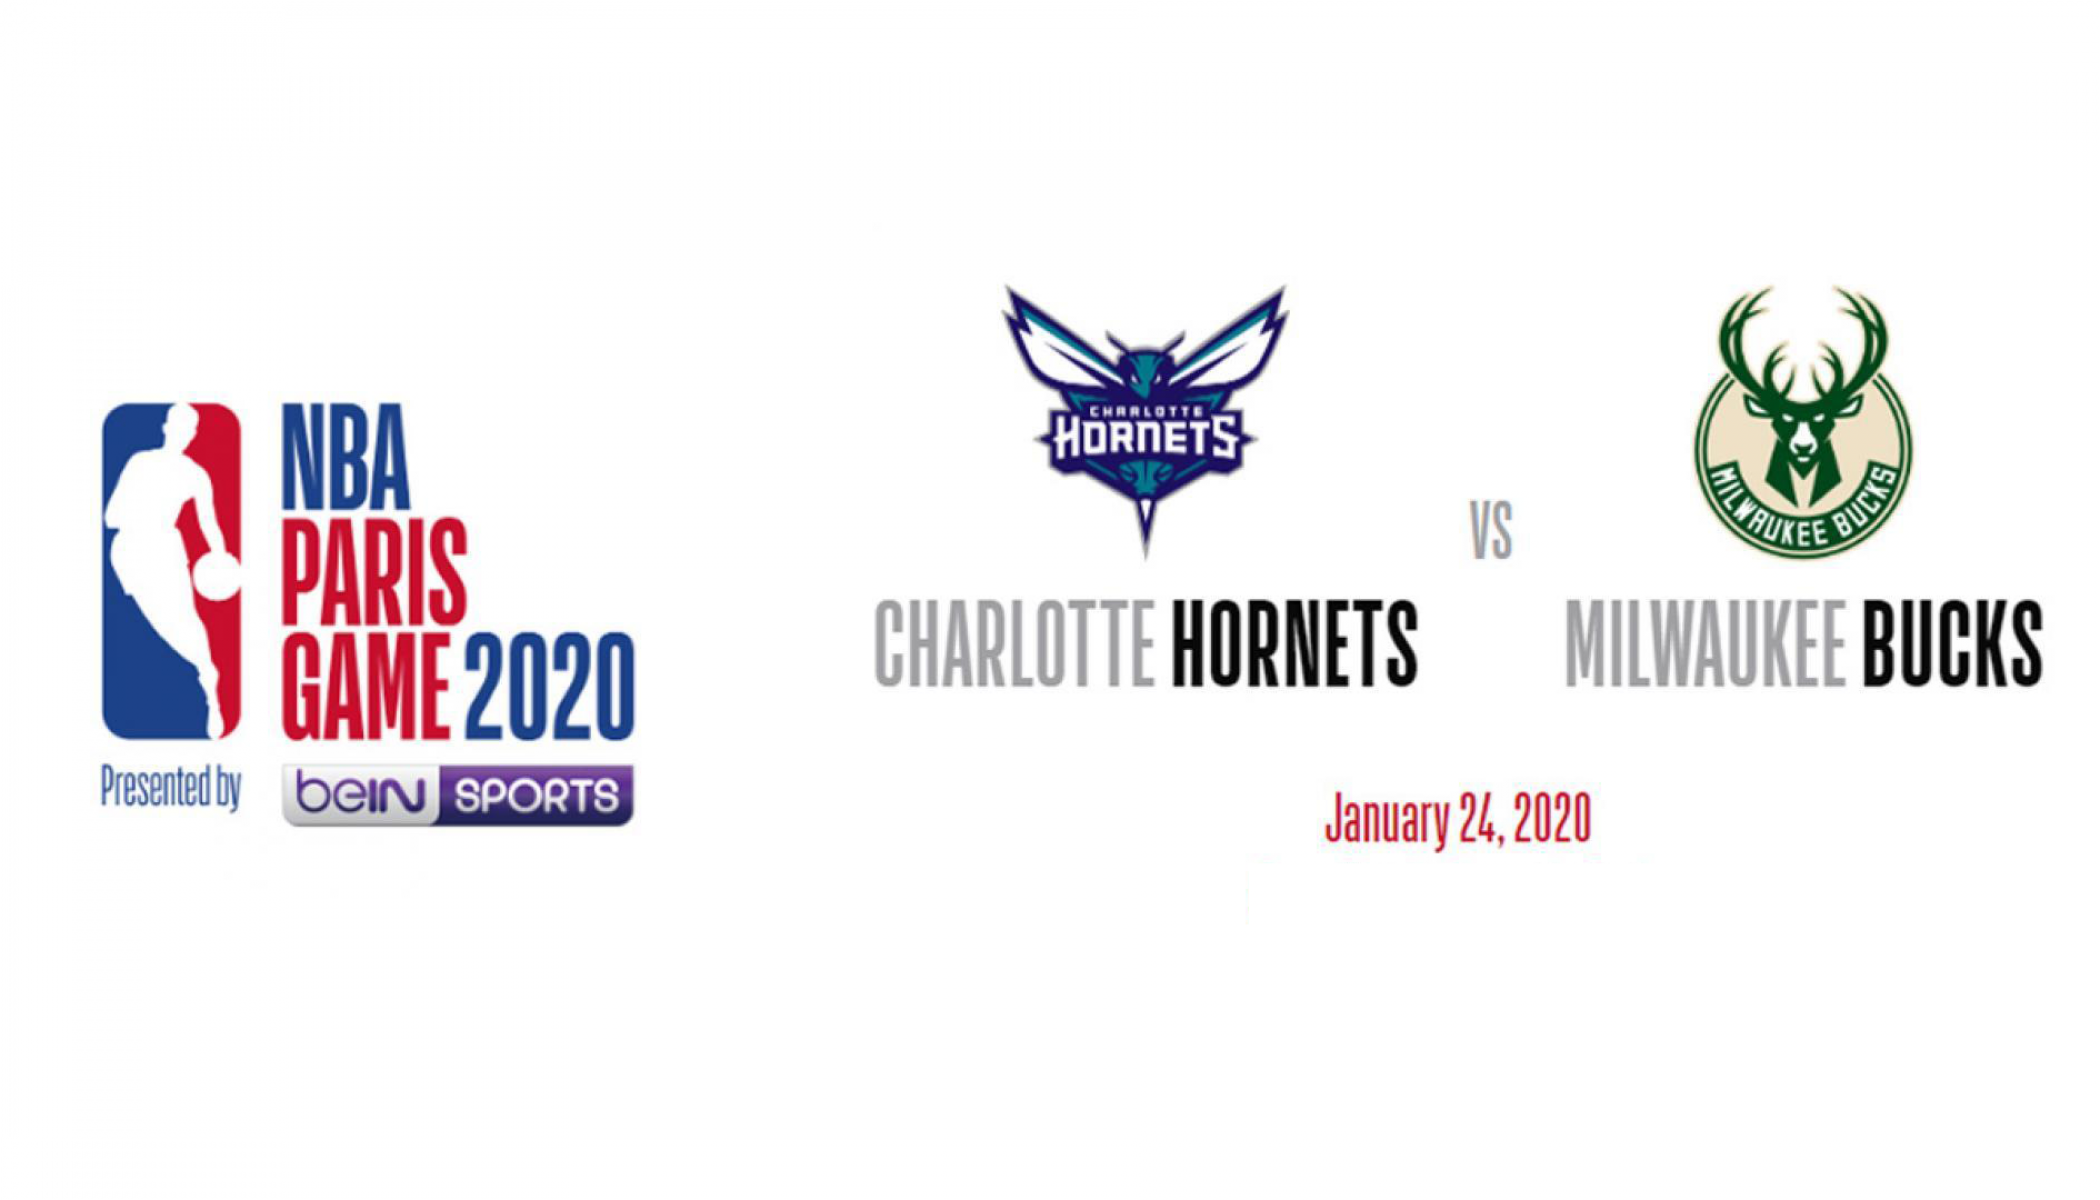 Nba Schedule 2020.Pringles Partner With Nba For 2020 Paris Game Isportconnect